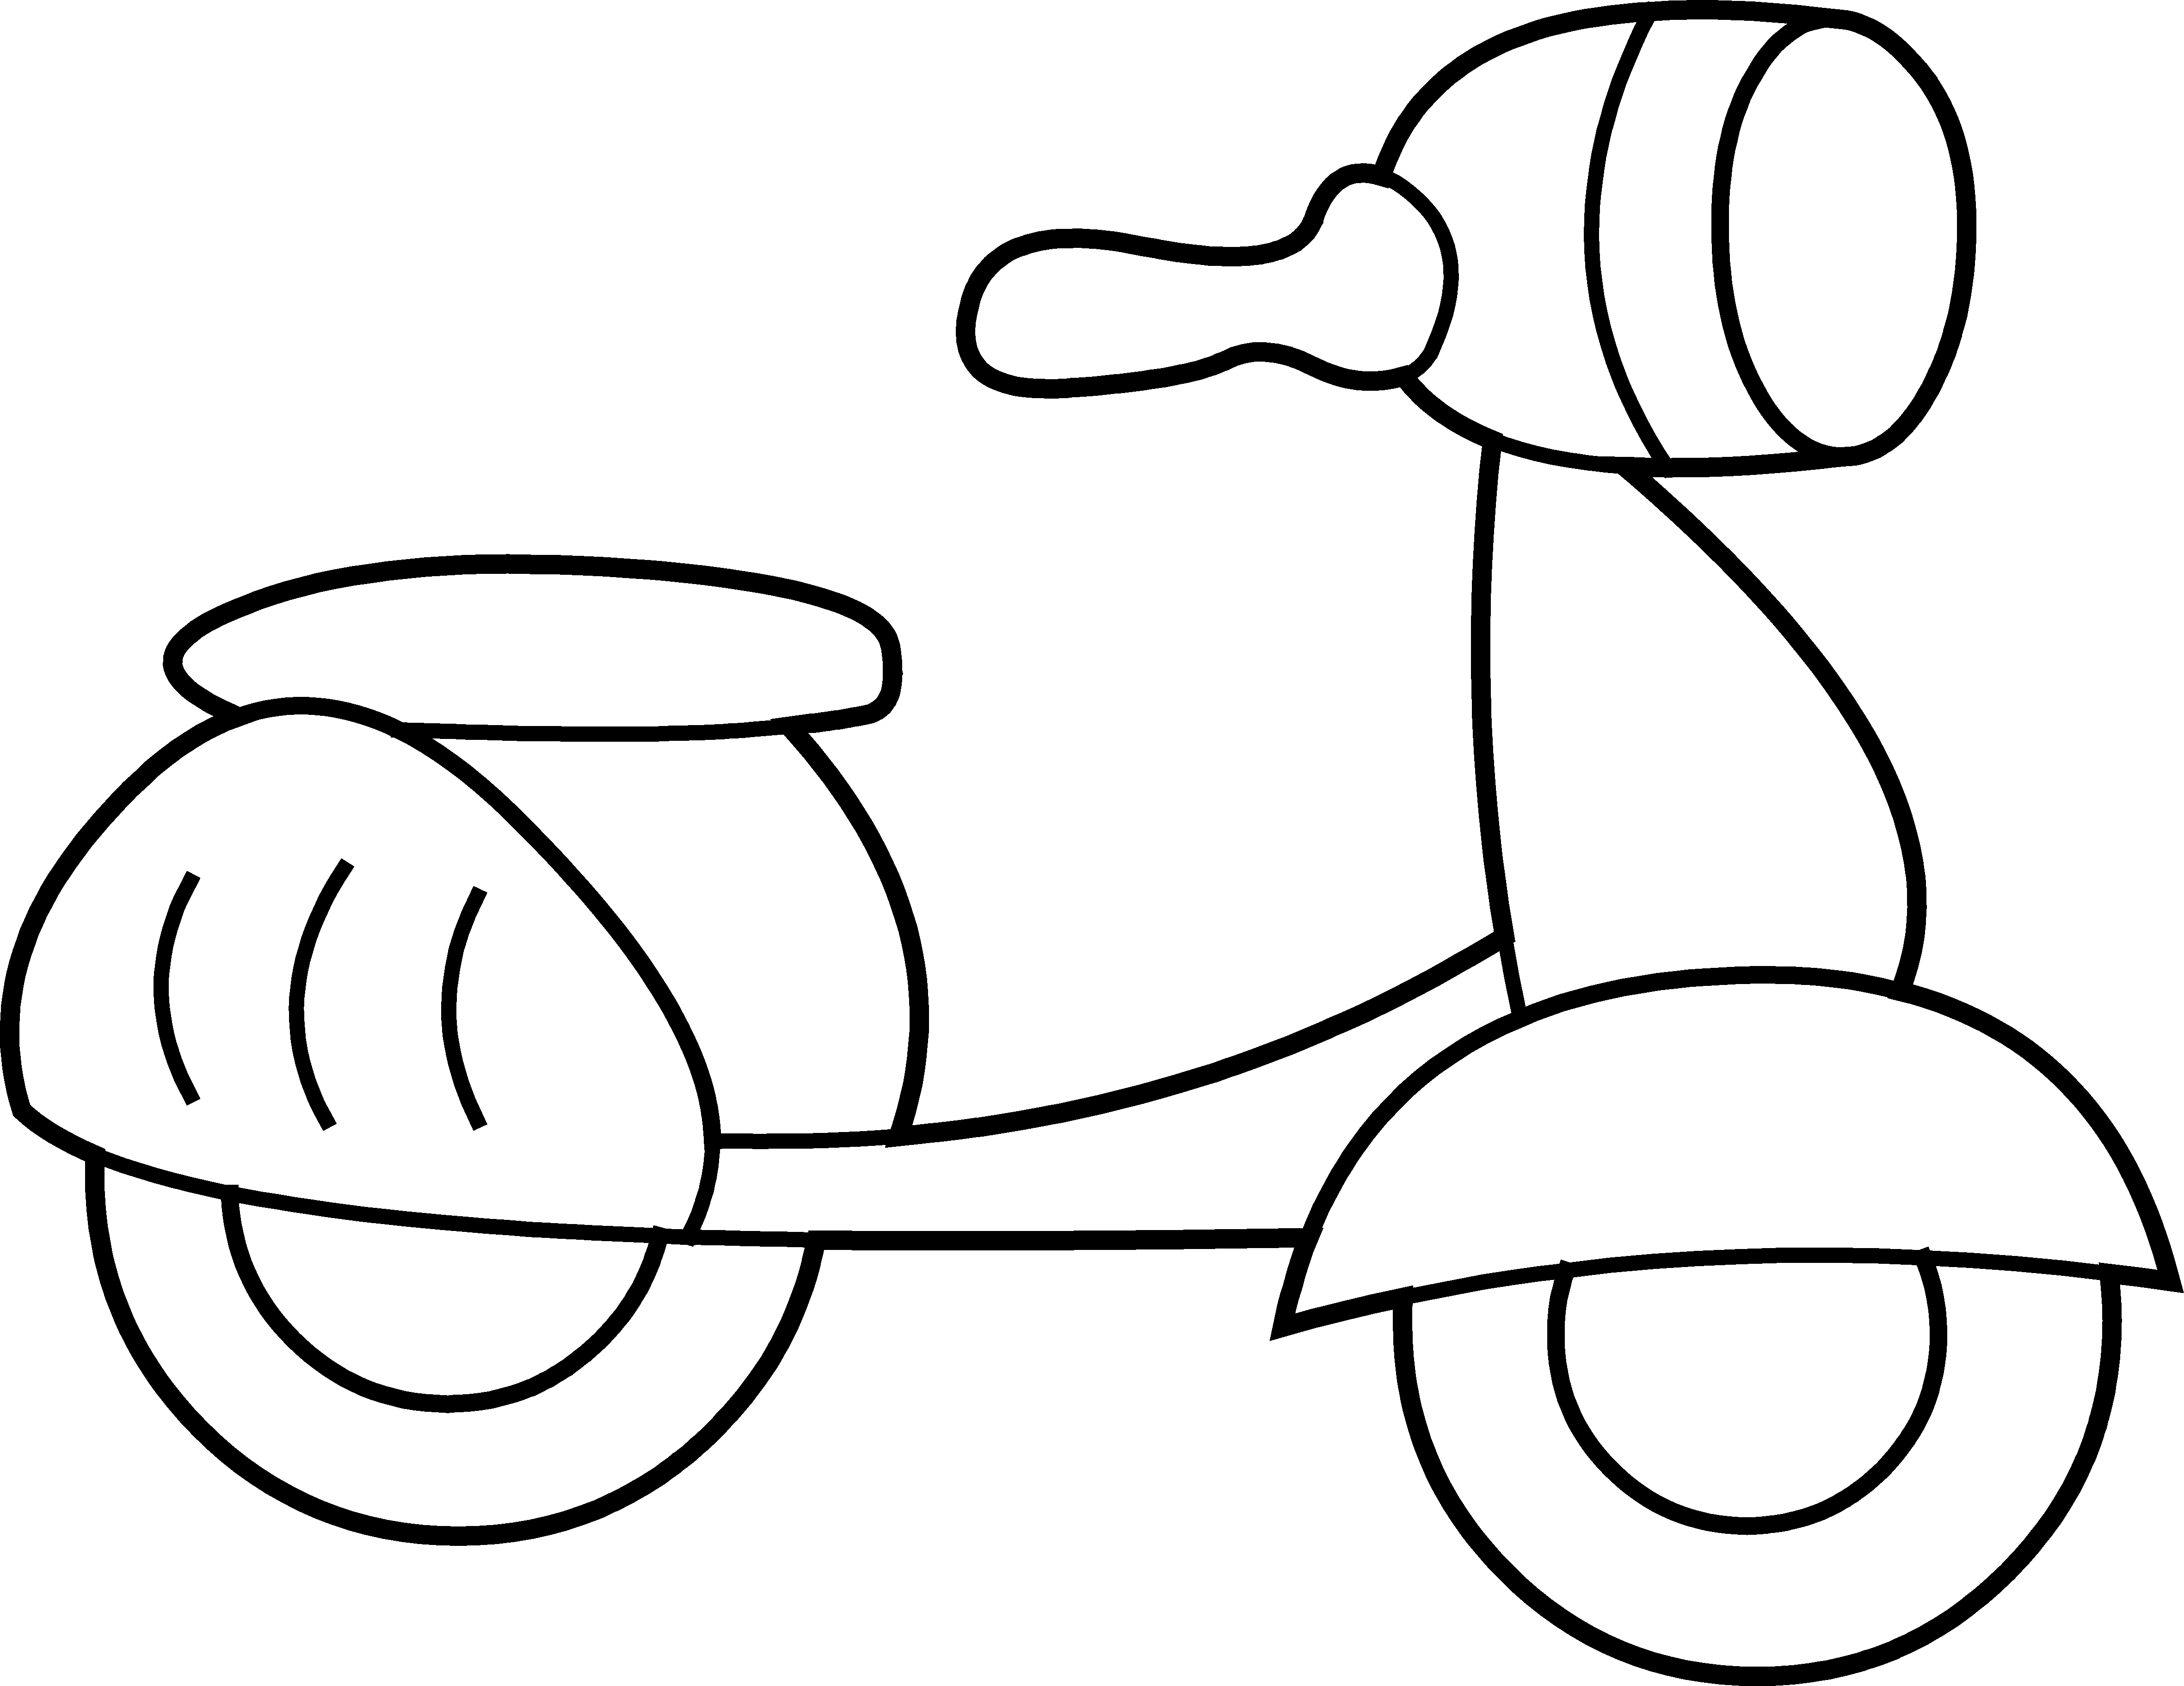 Scooter Clipart By Hallow Graphics Cars Coloring Pages Cute Toys Coloring Pages